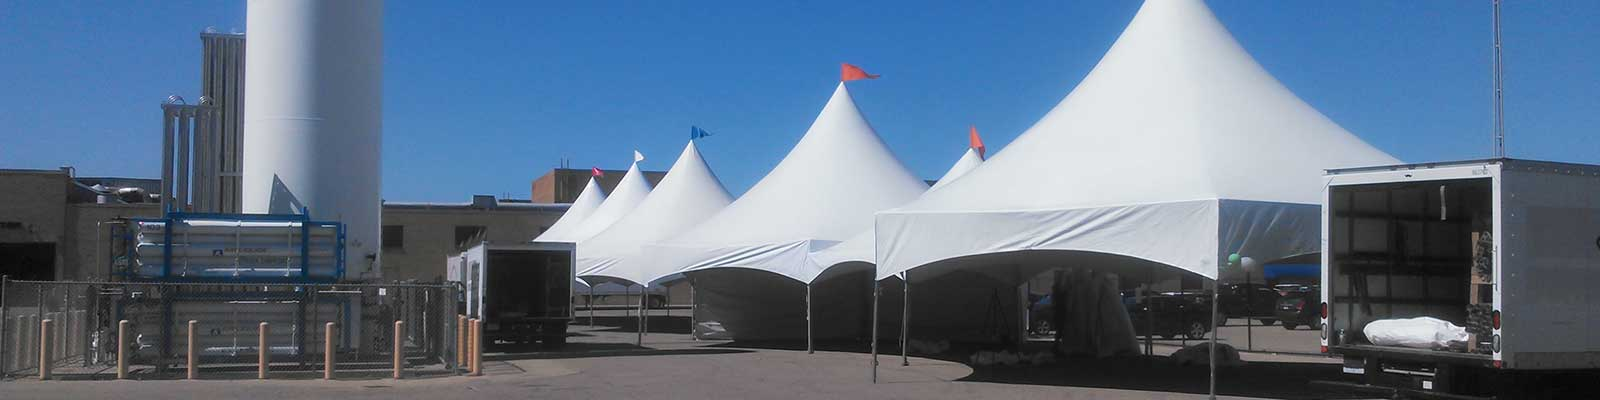 Corporate event rentals in Livingston County and Washtenaw County